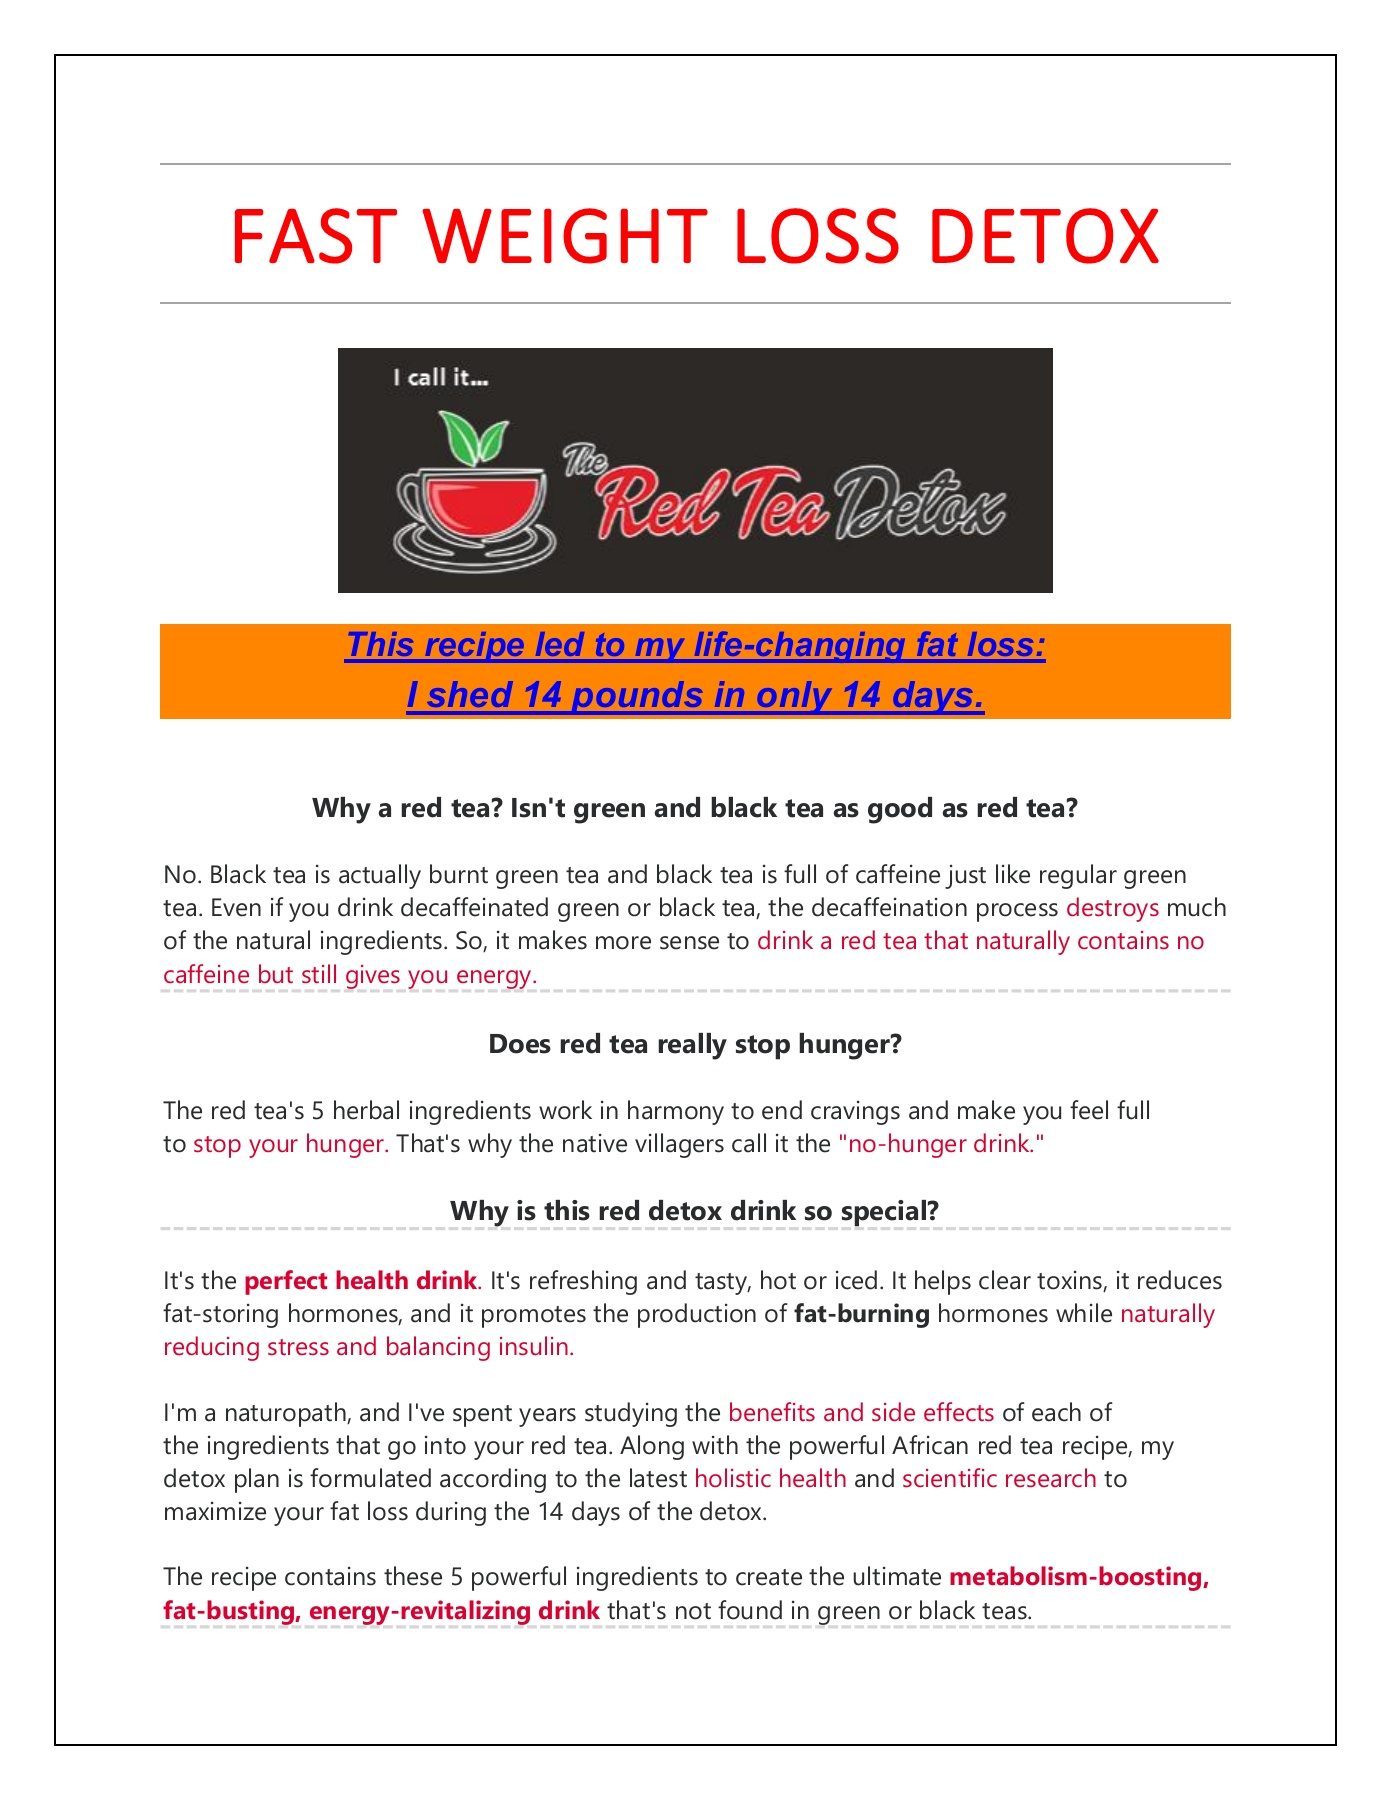 Fast weight loss drink